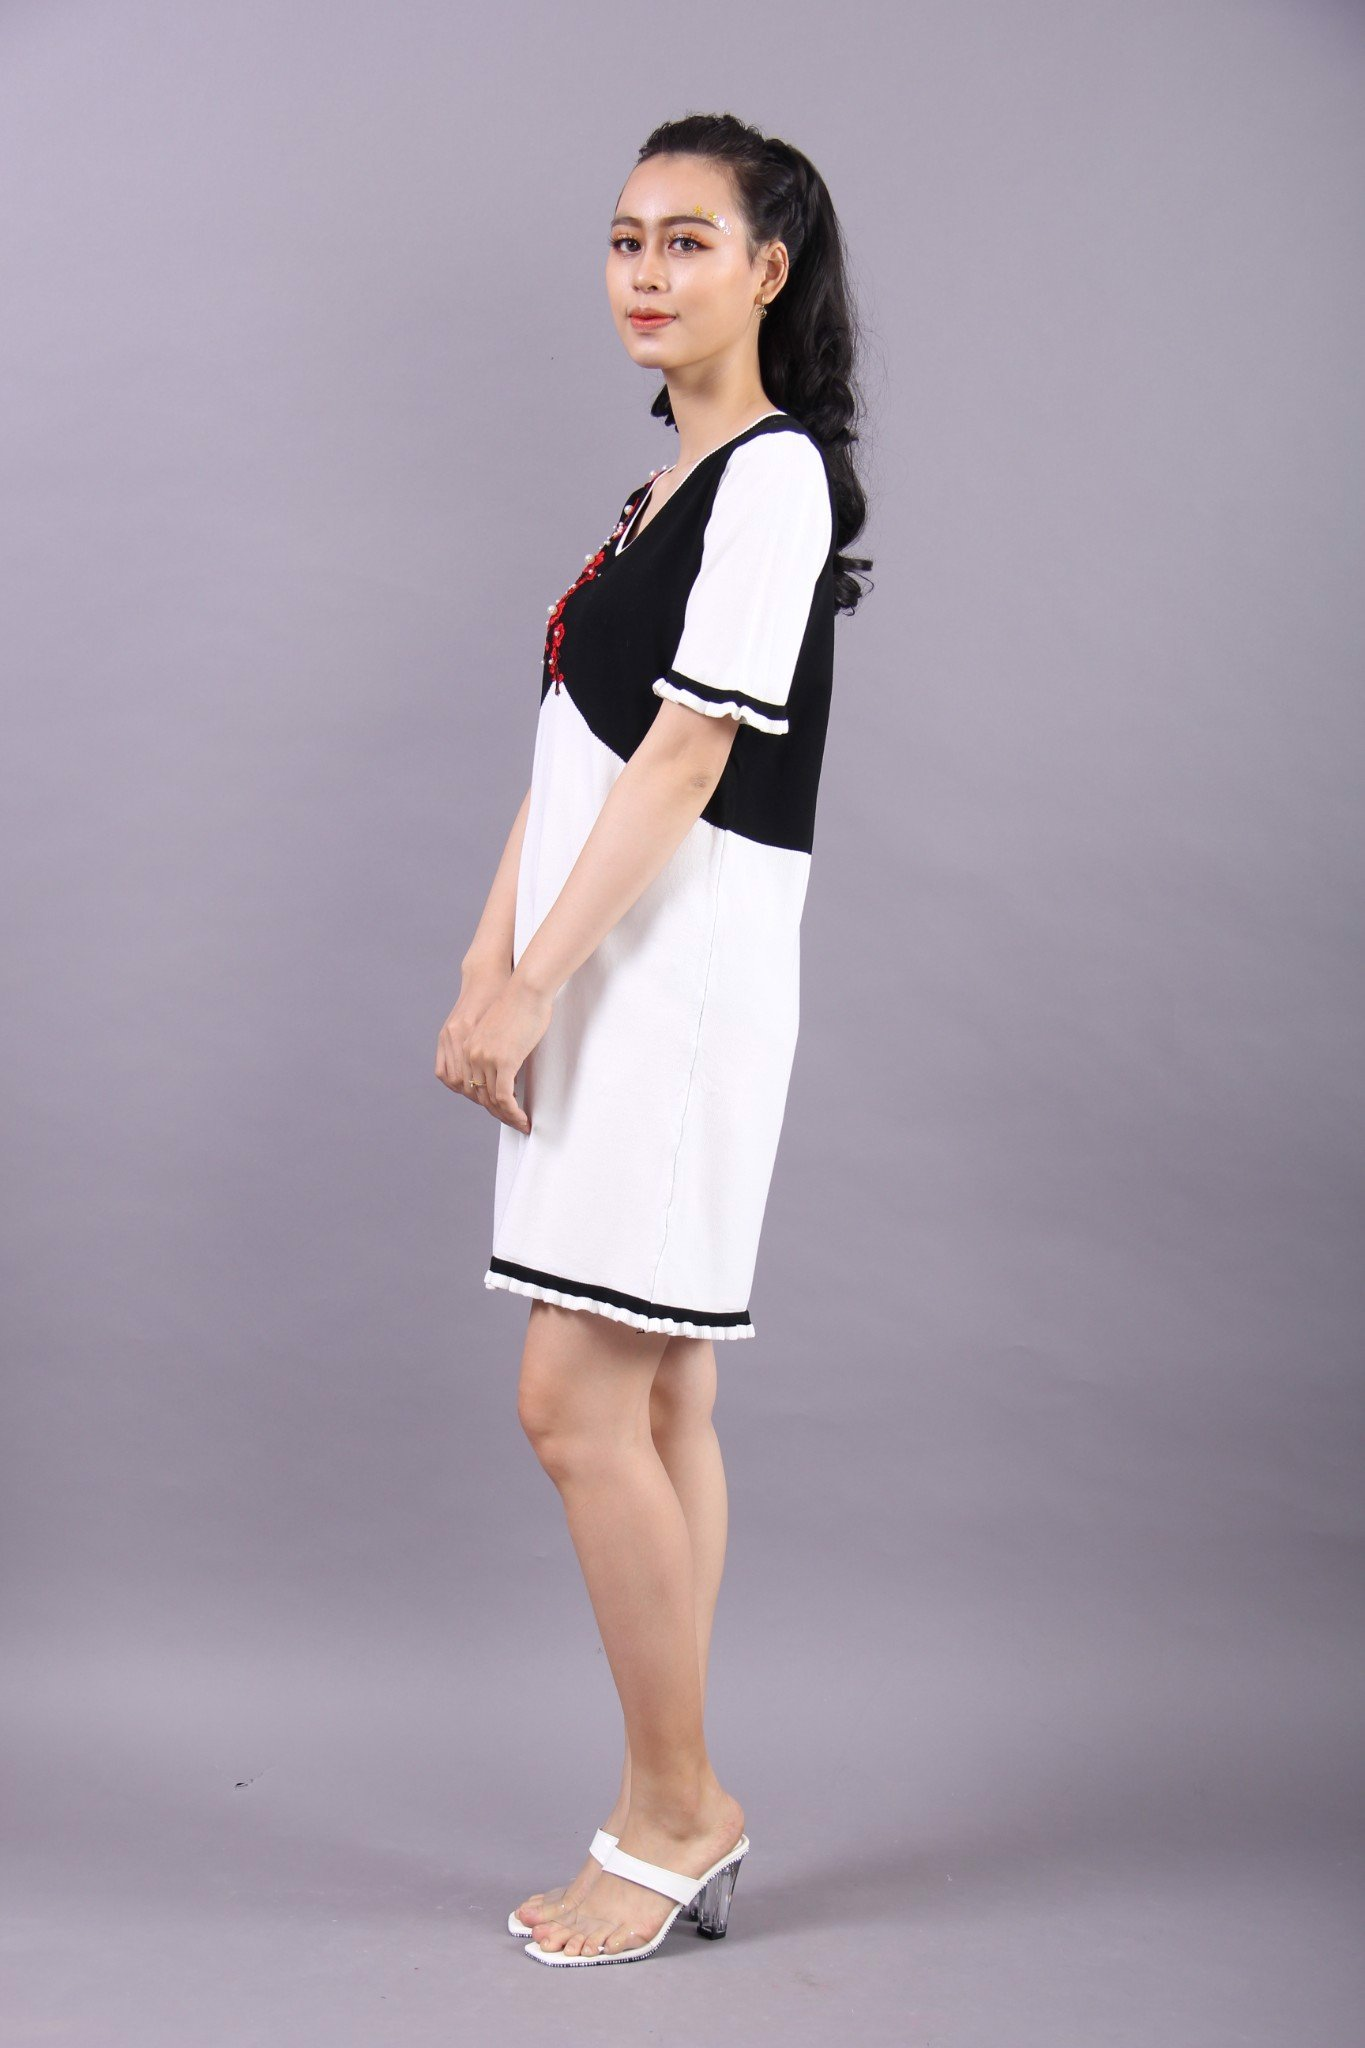 Cherry blossom brach embroidery black and white shift dress